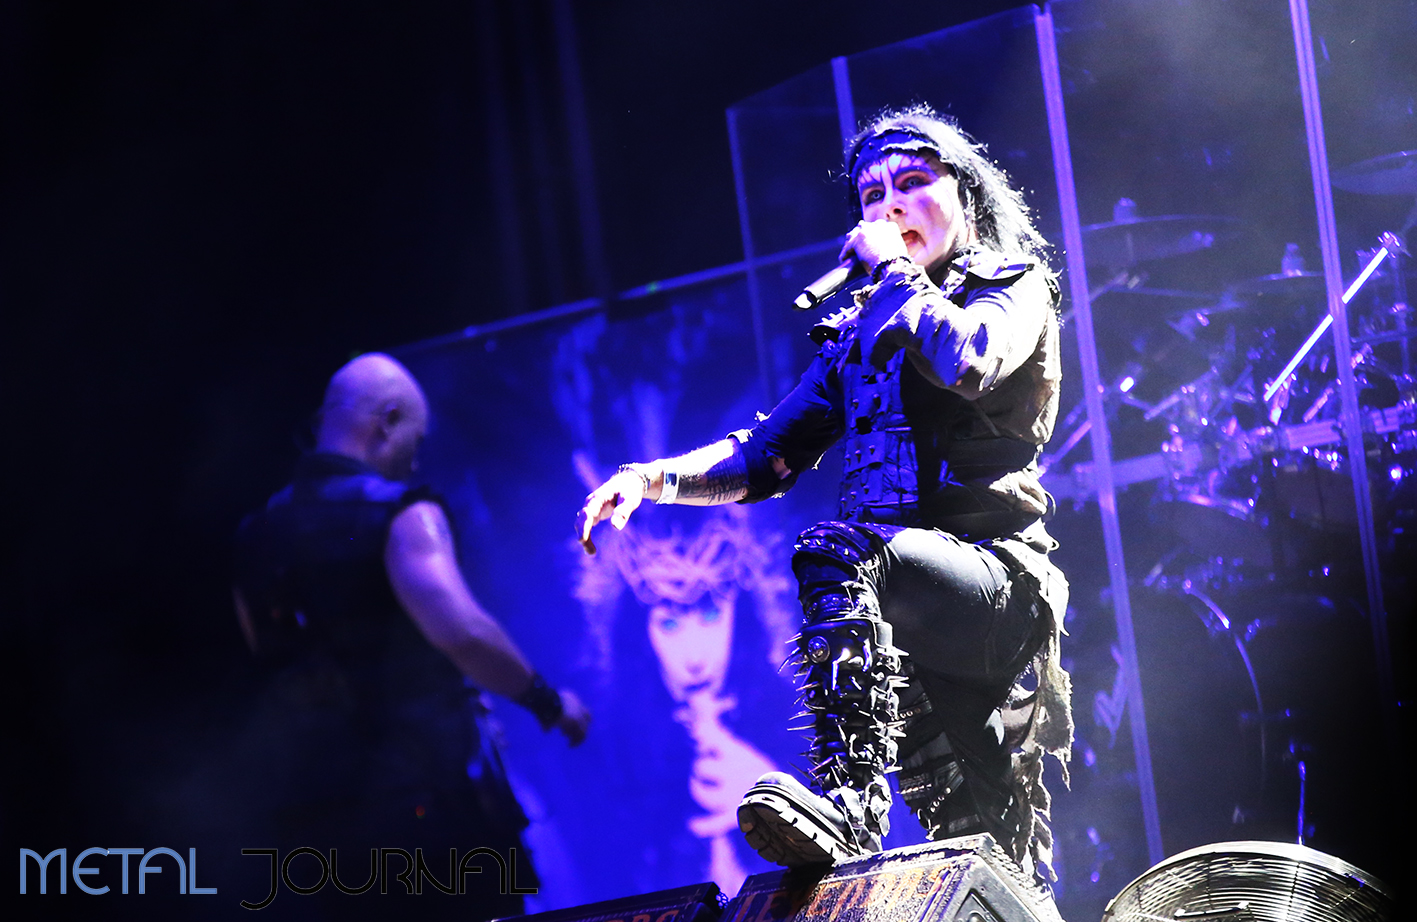 cradle of filth - leyendas del rock 2019 metal journal pic 1